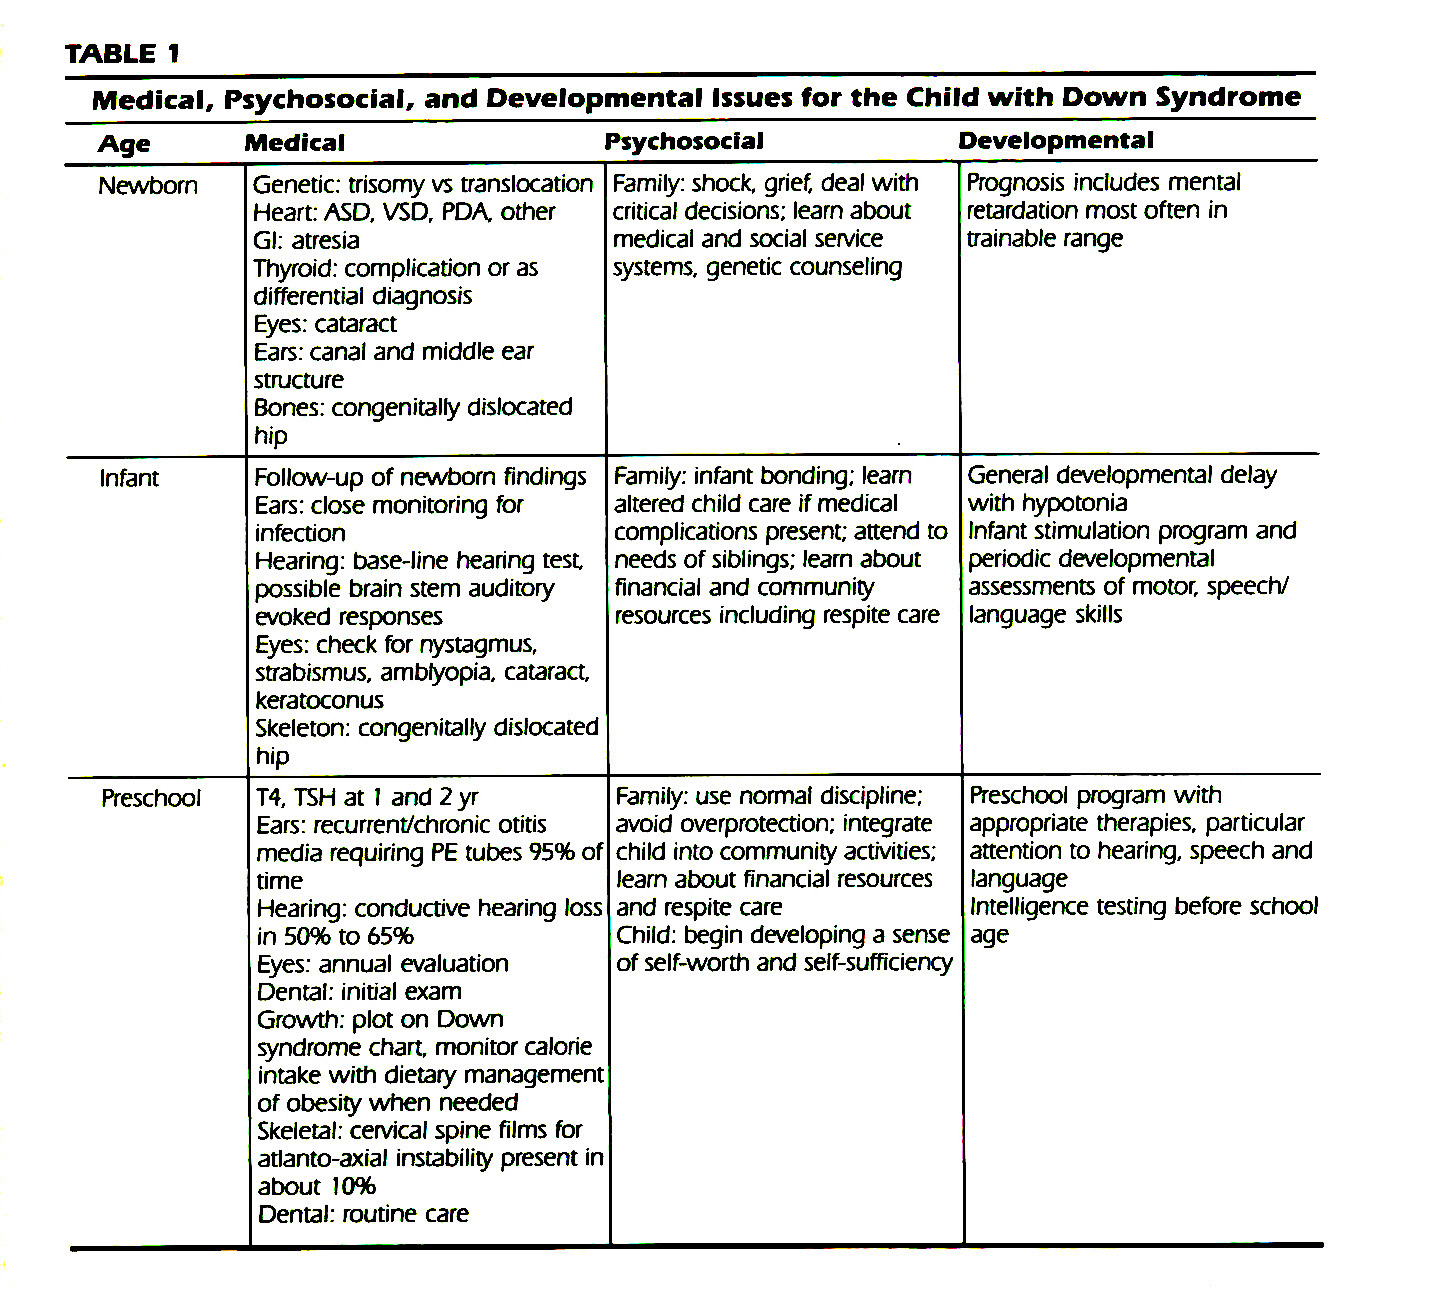 TABLE 1Medical, Psychosocial, and Developmental Issues for the Child with Down Syndrome